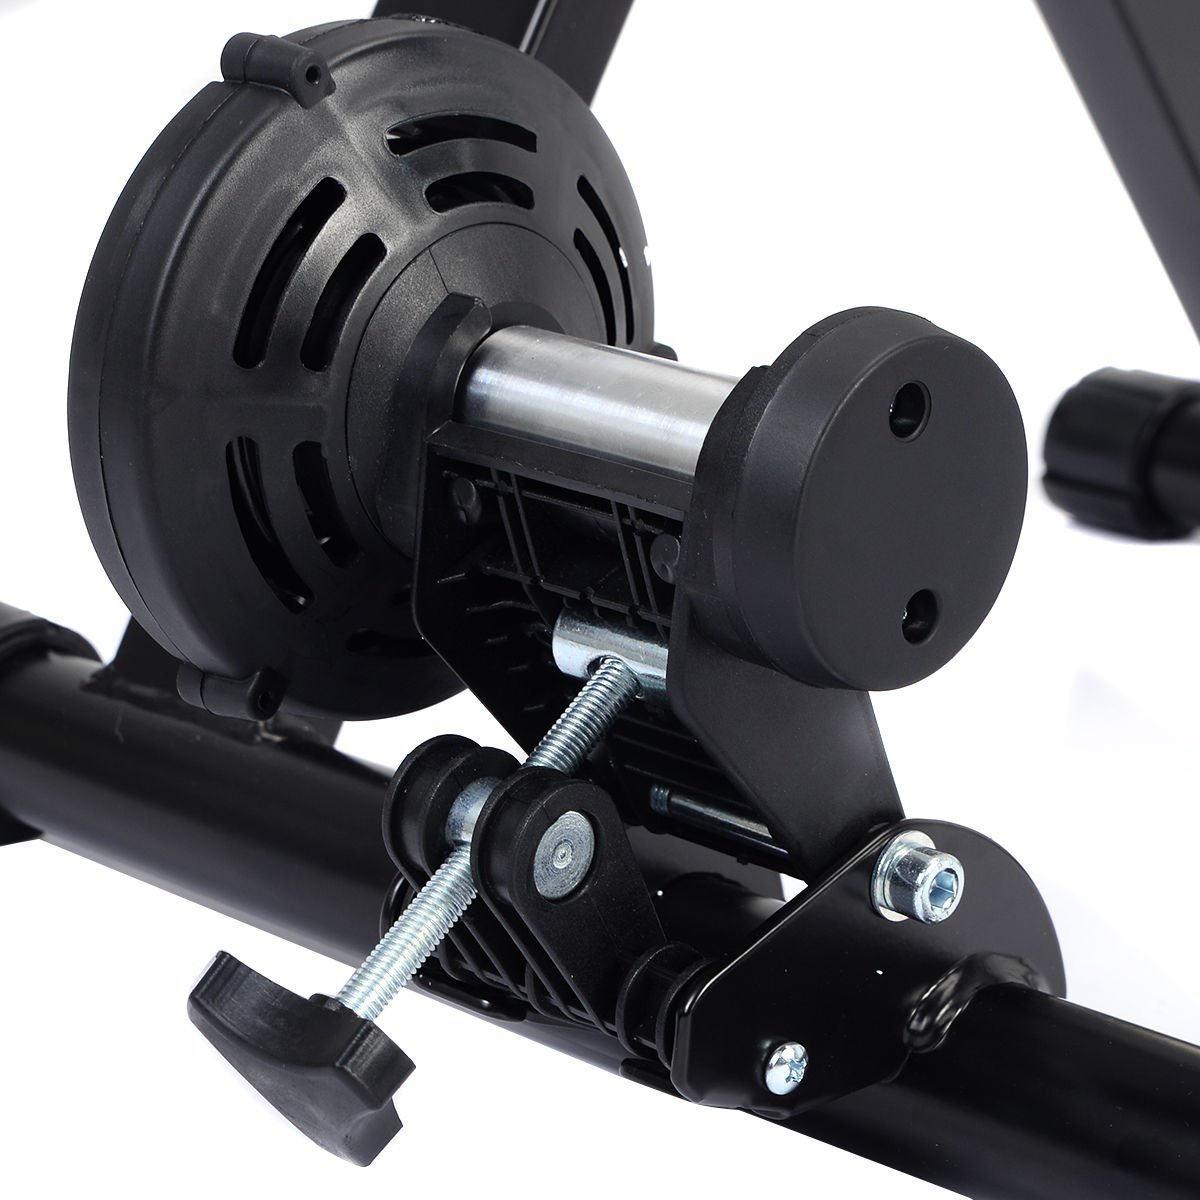 Goplus Portable Magnet Steel Bike/Bicycle Indoor Exercise Trainer Stand by Goplus (Image #8)